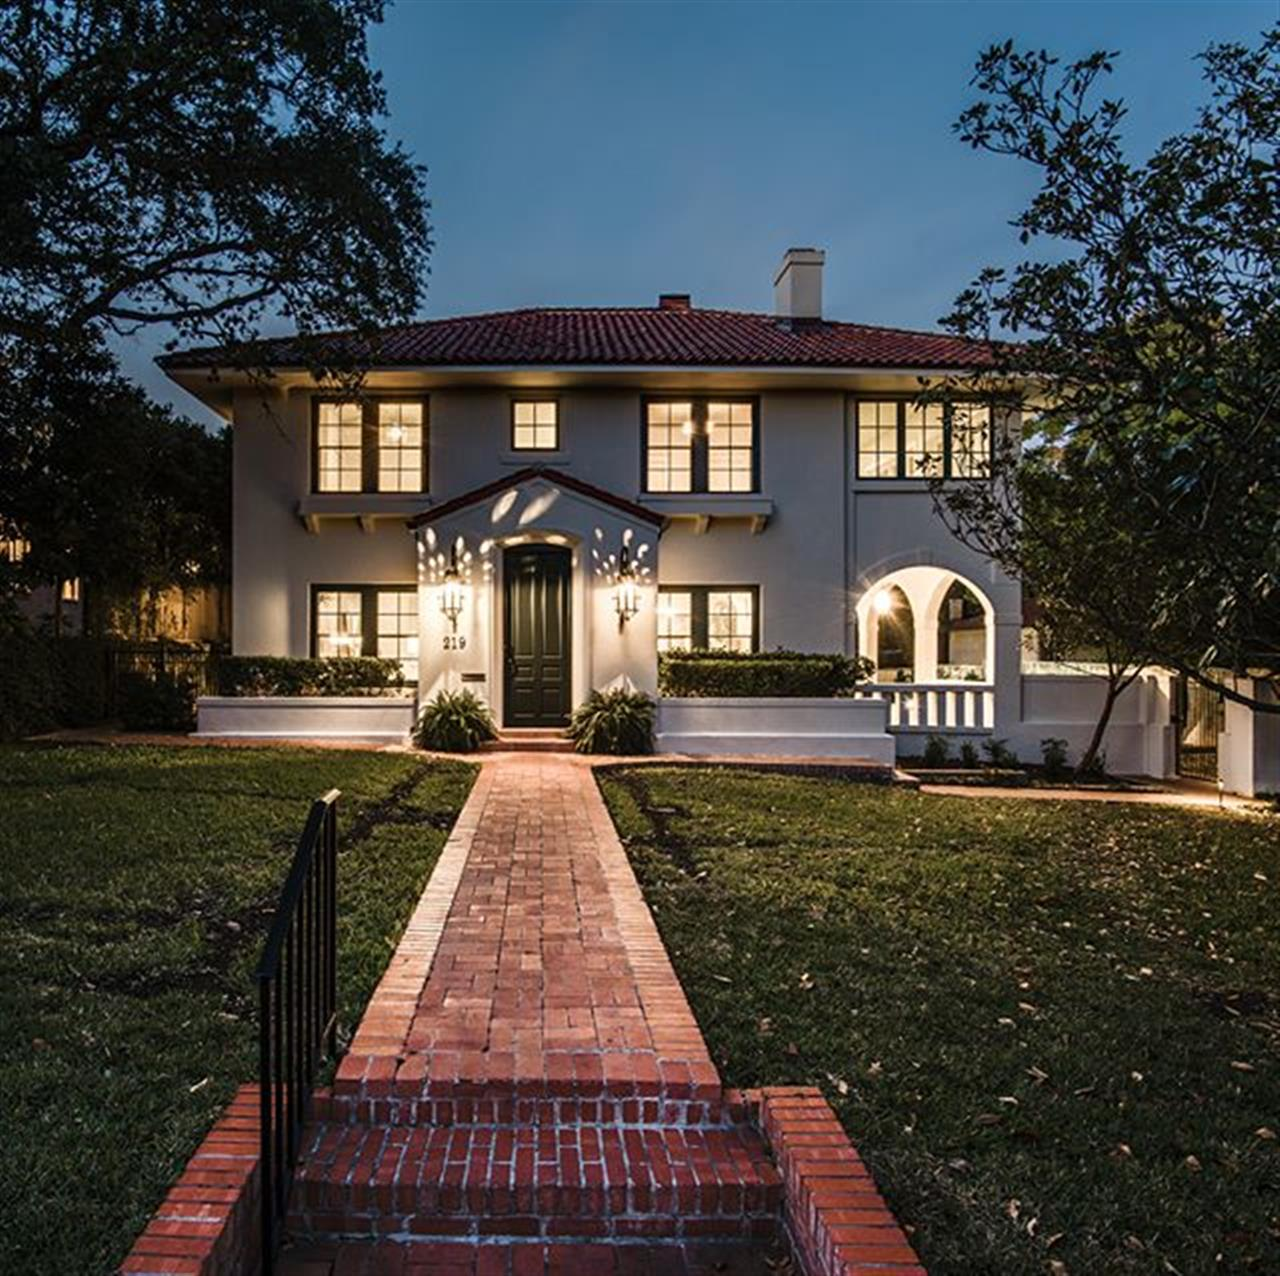 Luxury of the Day: 219 Argyle Ave. in #AlamoHeights. This beautifully restored Spanish Mediterranean-style home has been remodeled to meet the needs of the 21st century lifestyle.